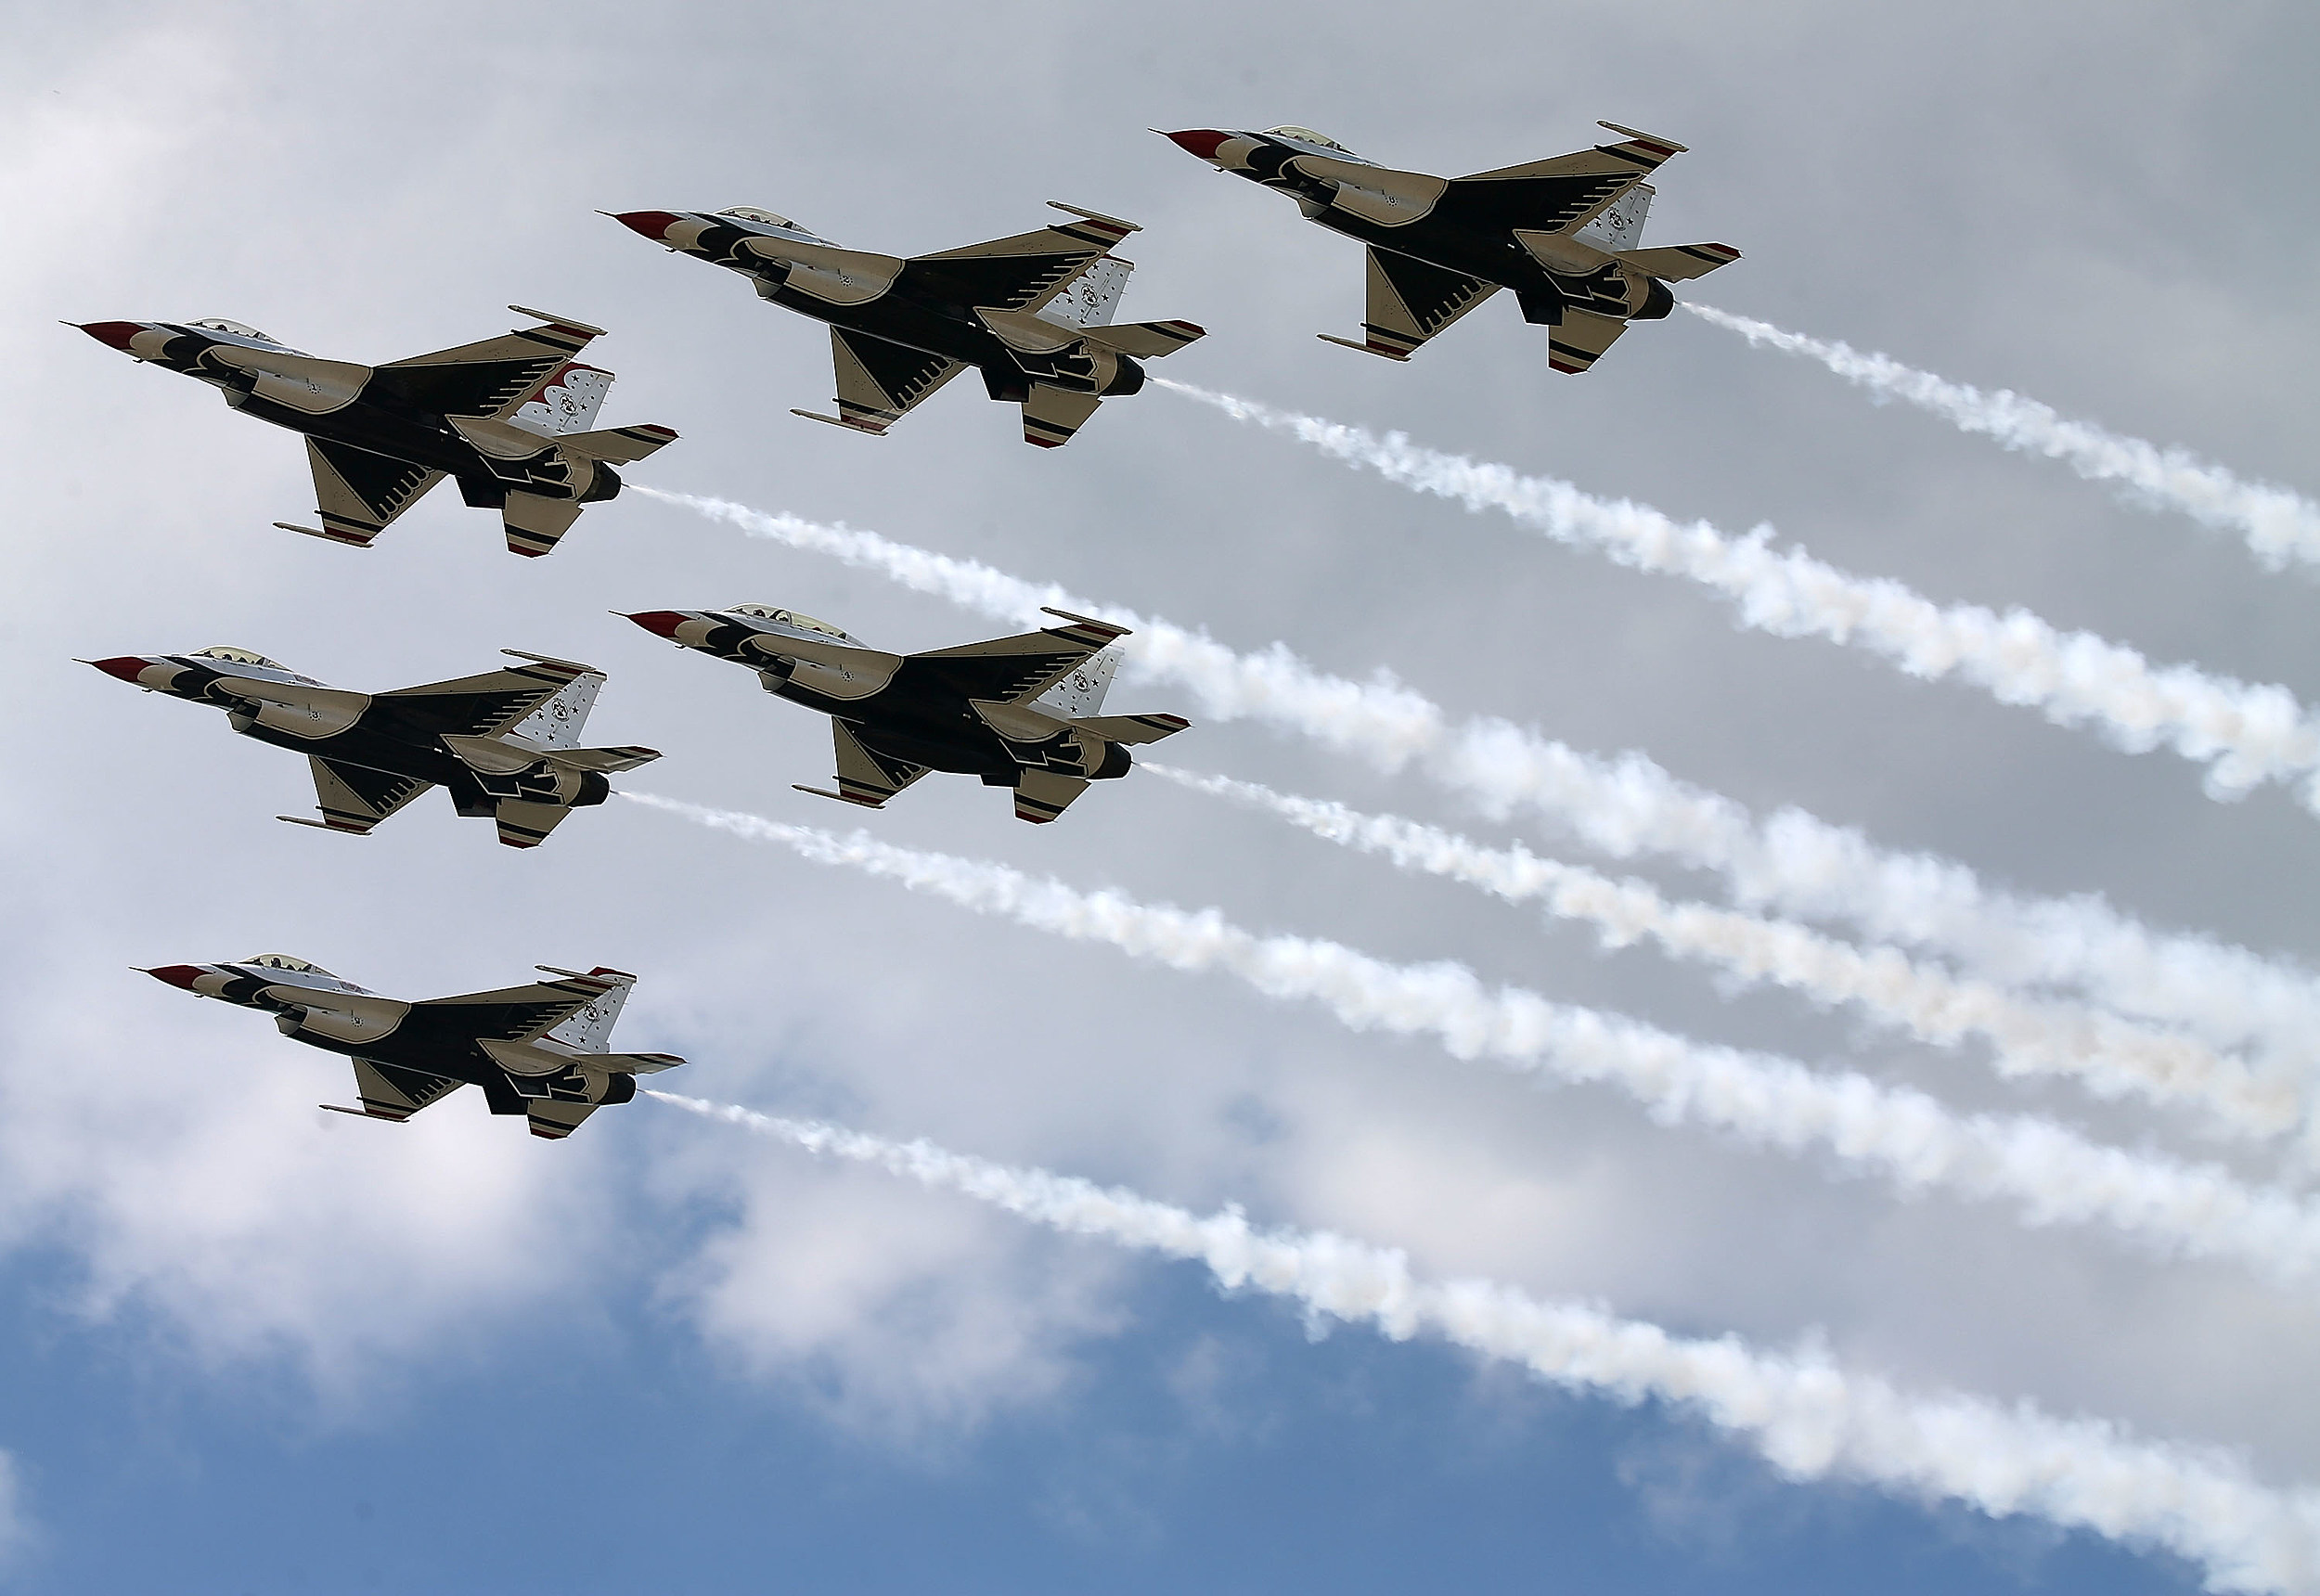 U.S. Air Force Thunderbirds (Getty Images)